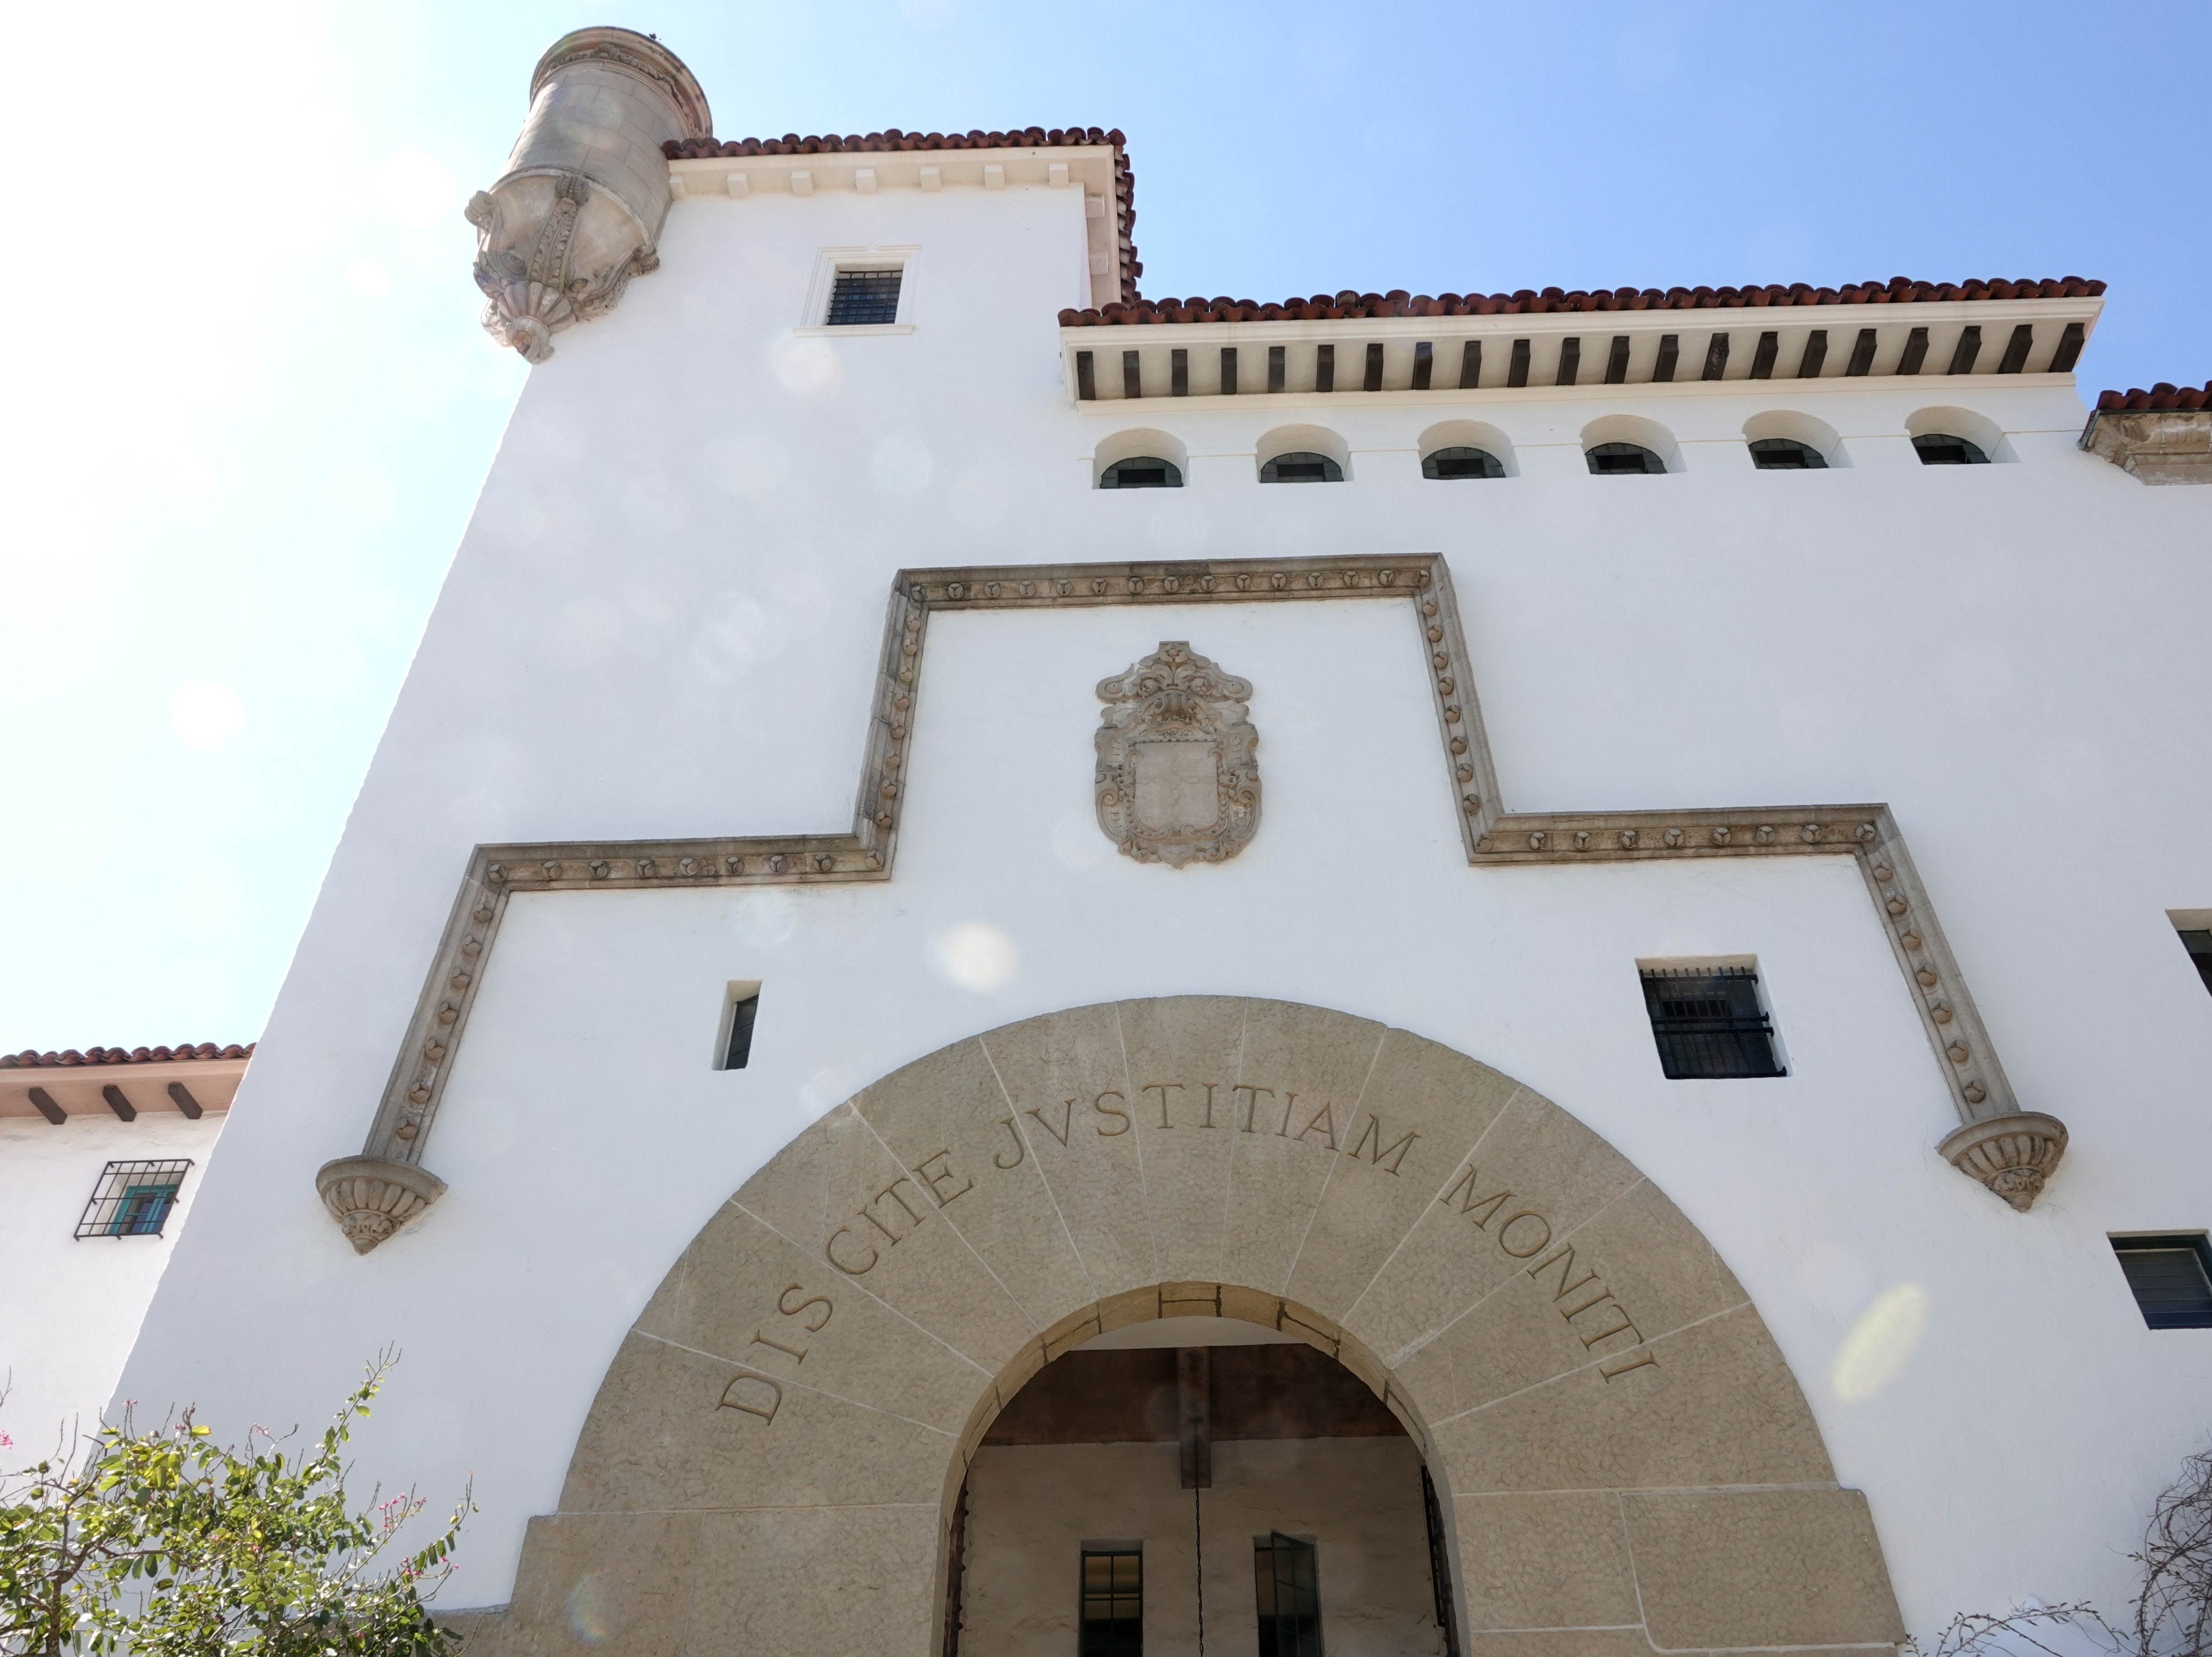 Santa Barbara County Courthouse.